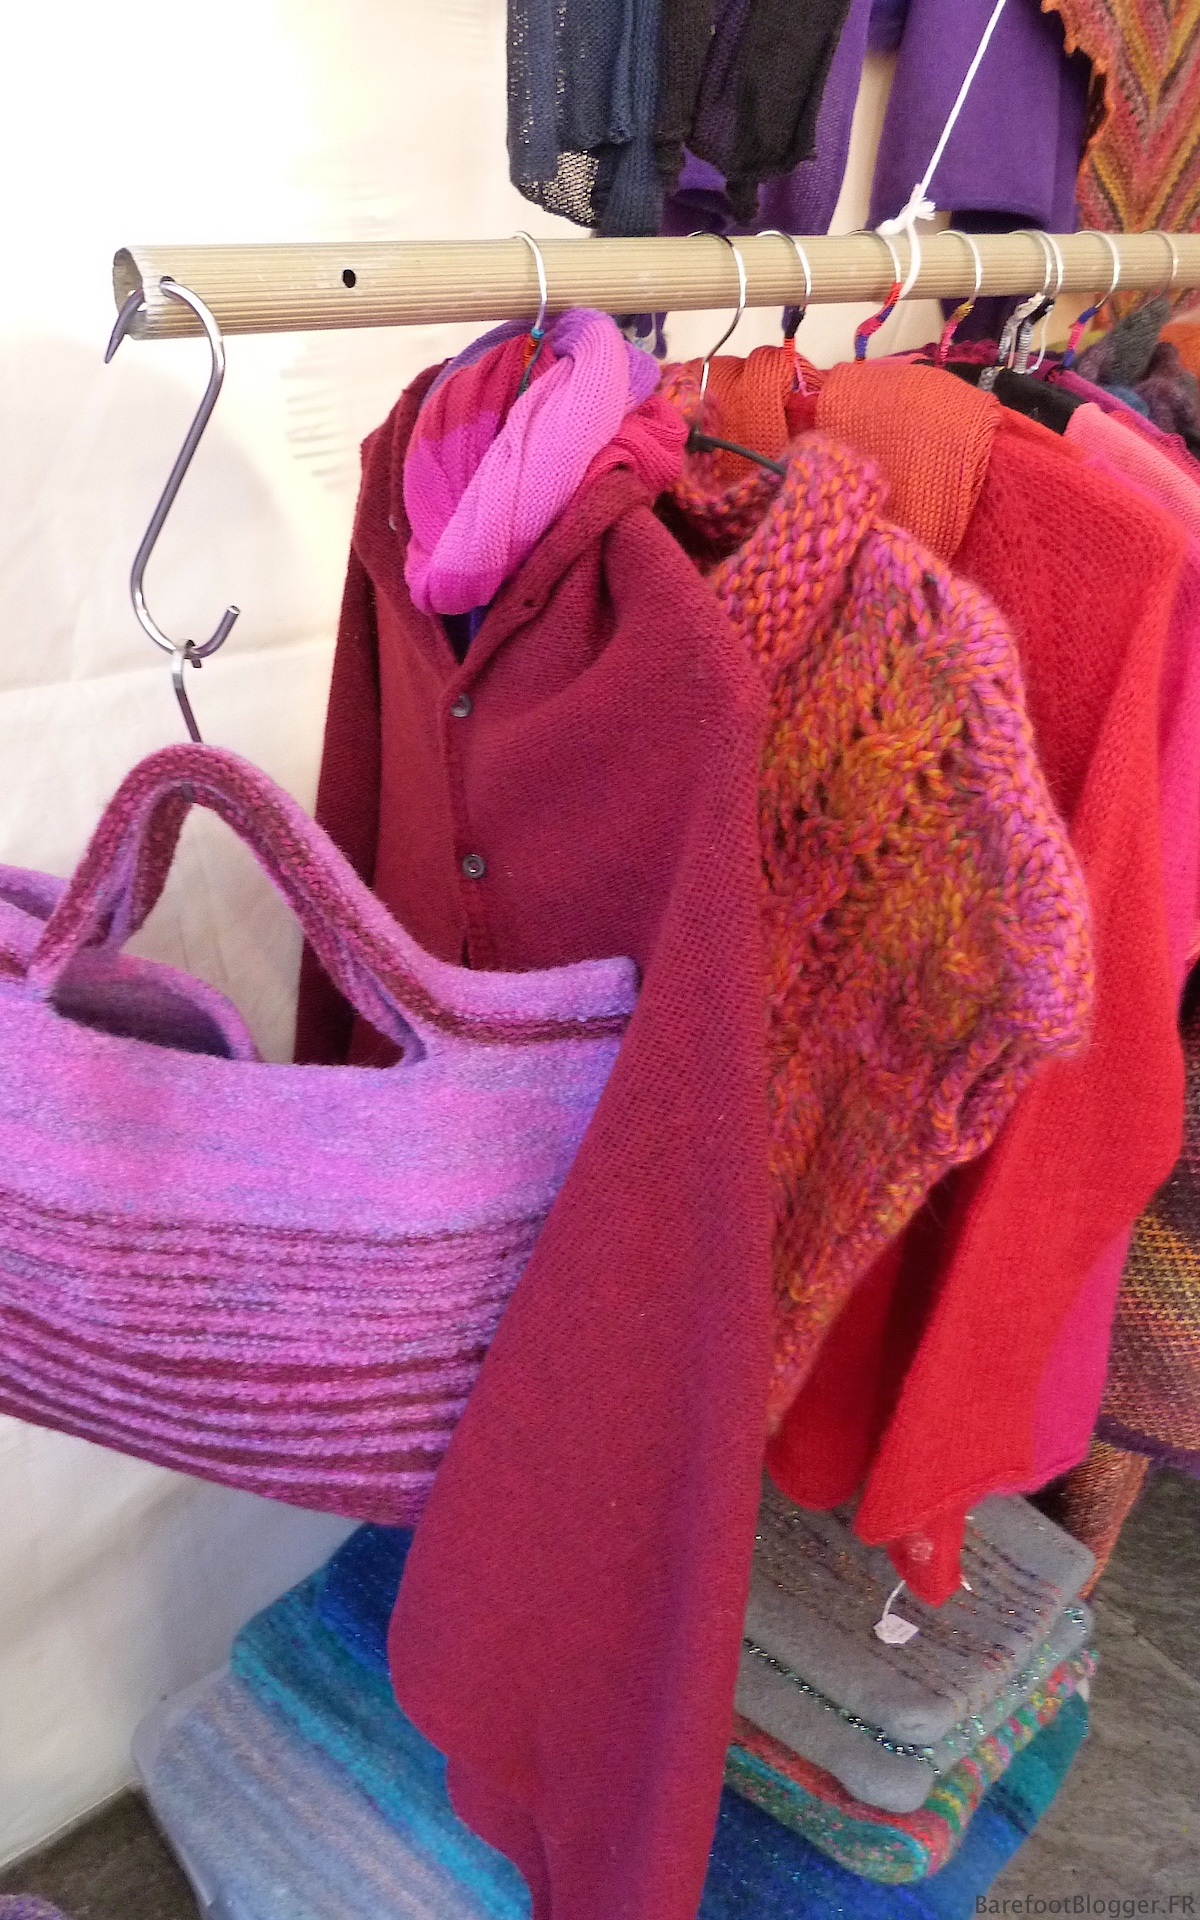 Handmade woolens in Uzes France